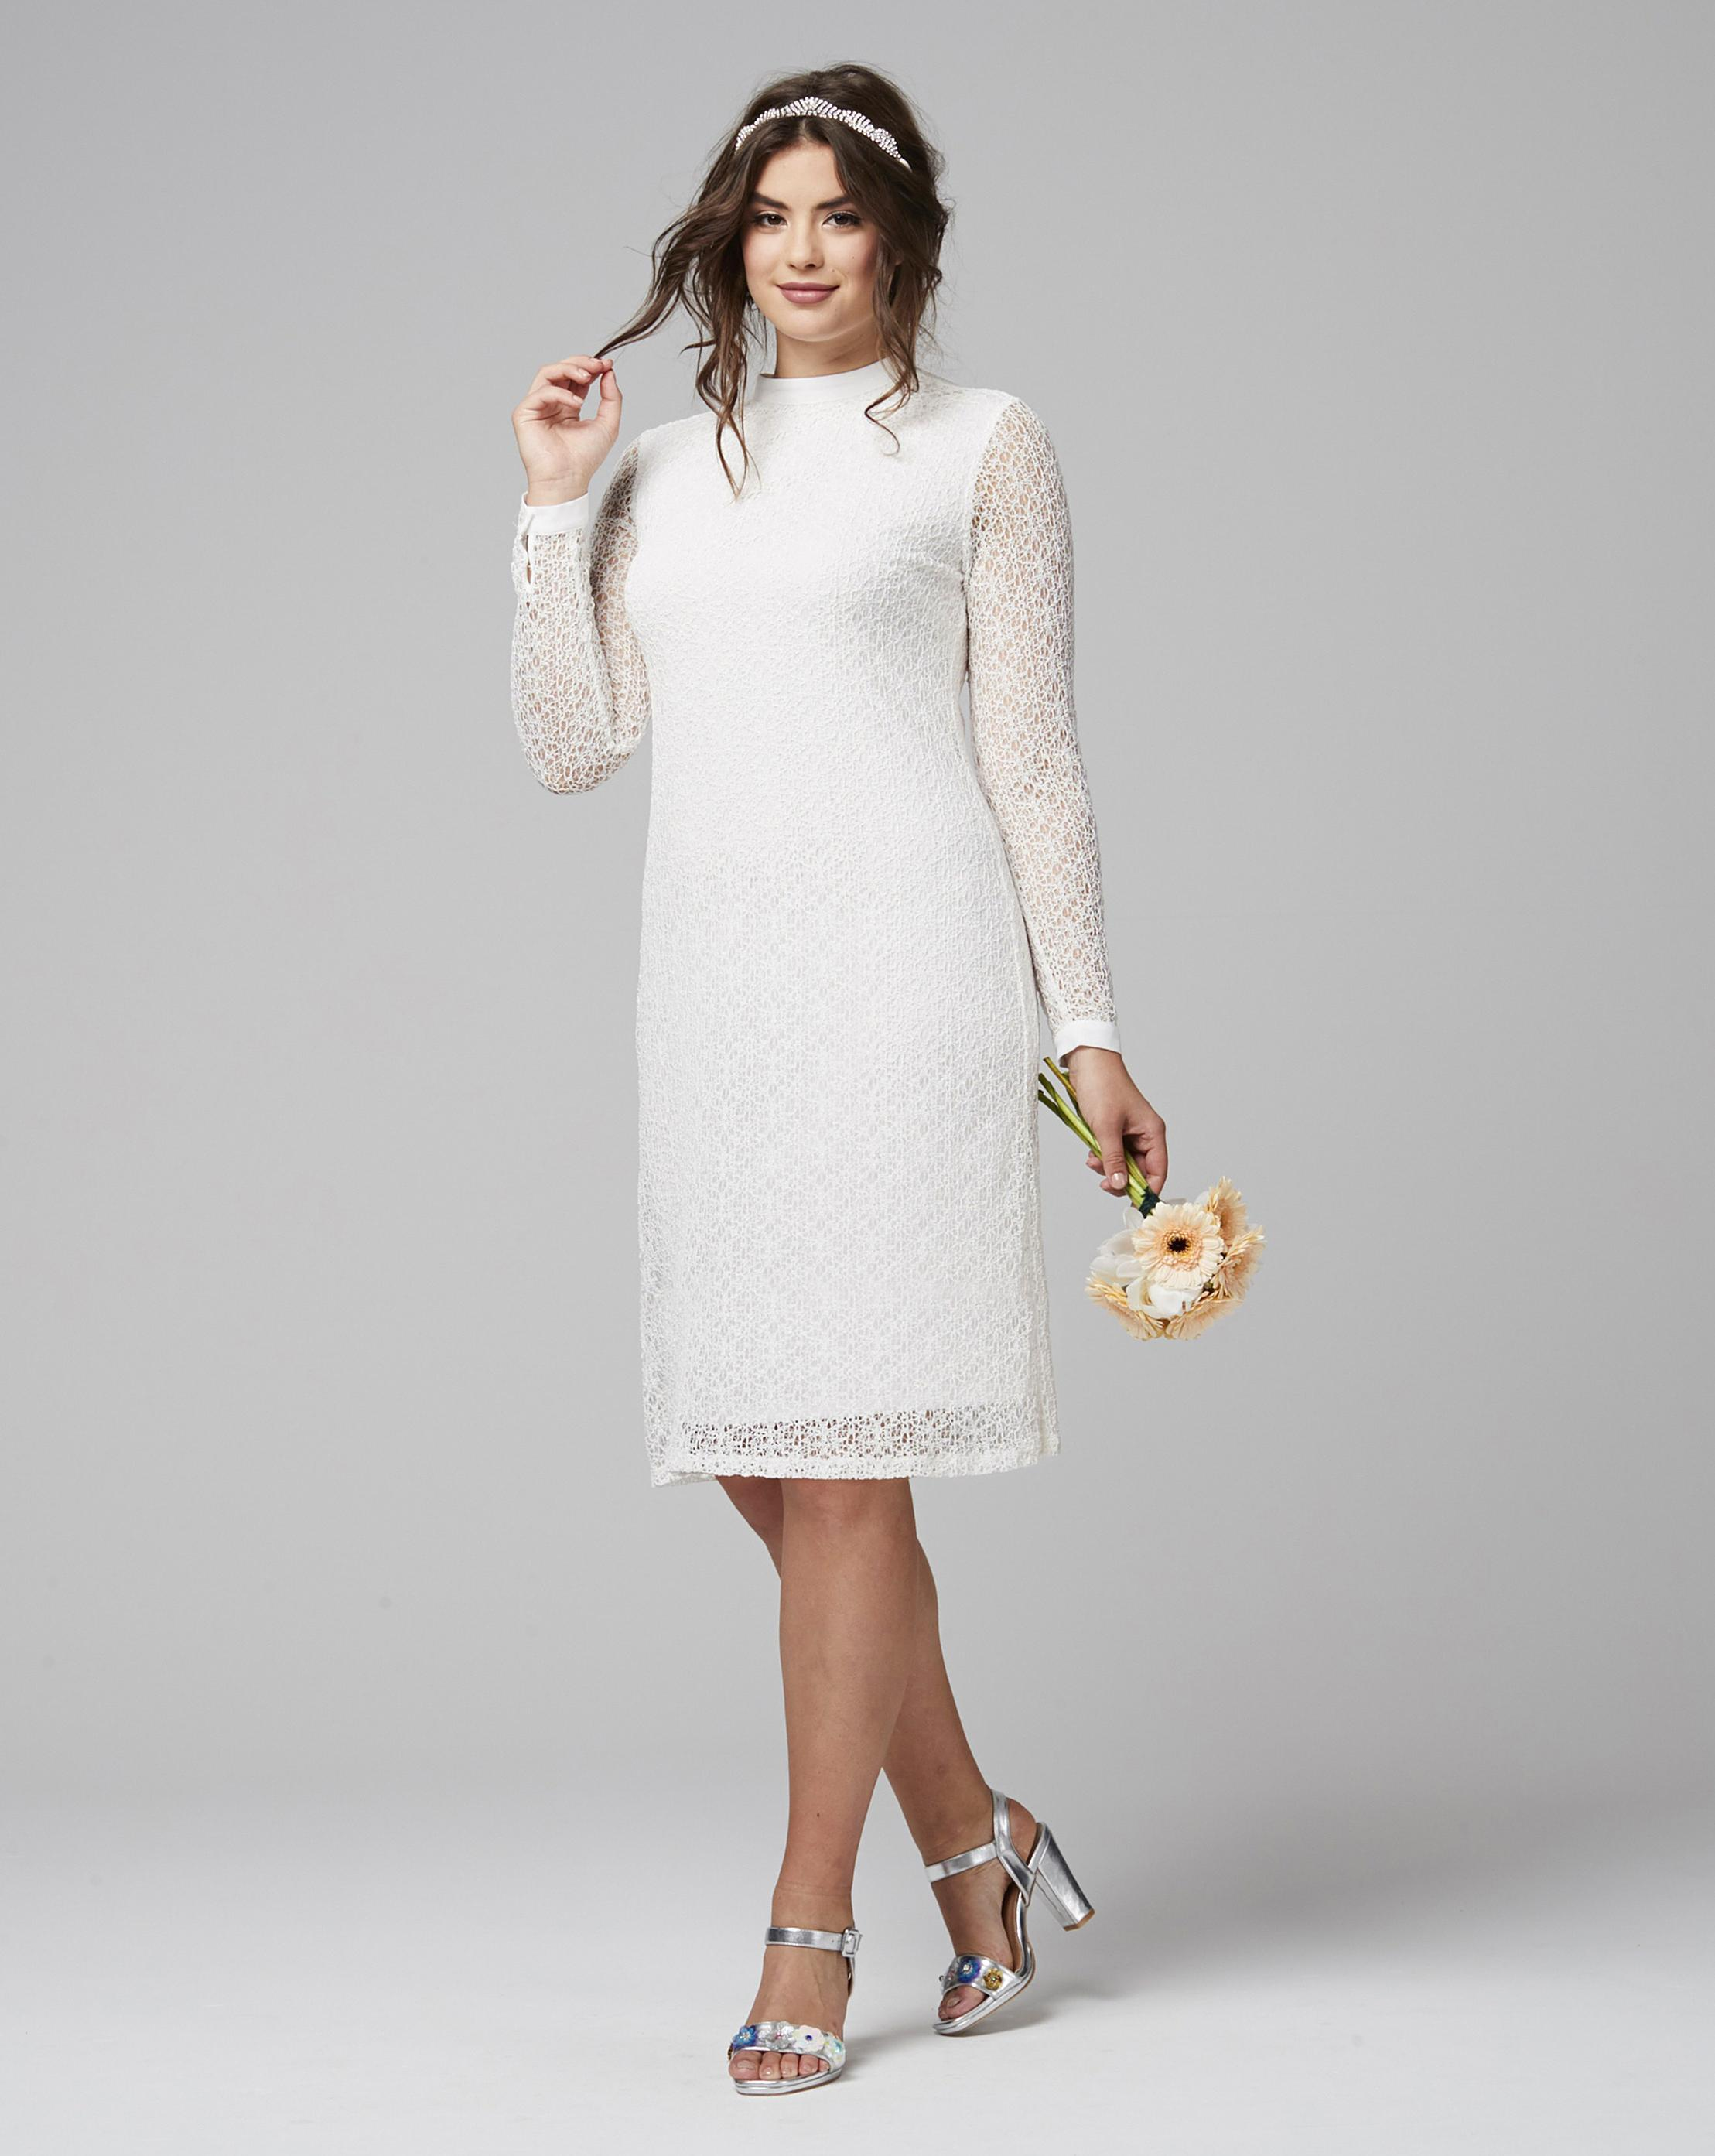 3a397bc2efe7 Lyst - Simply Be Joanna Hope Lace Dress in White